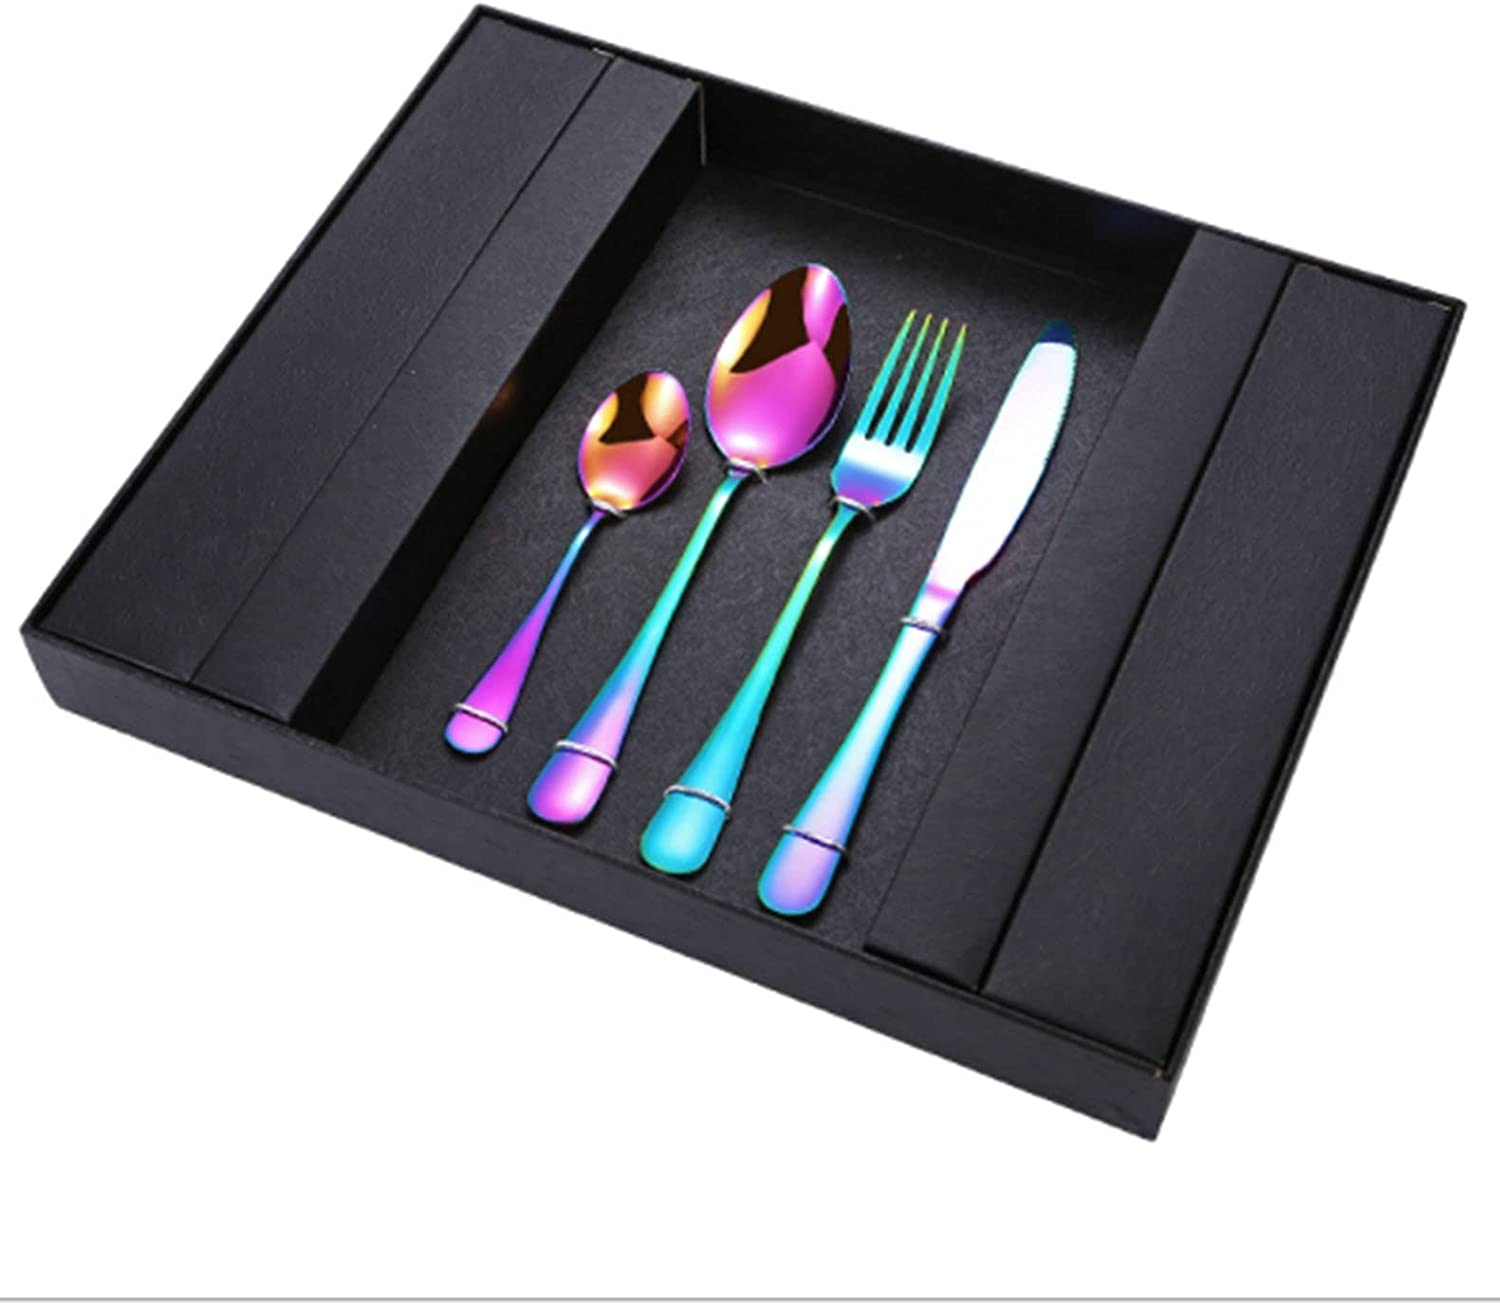 24-PCS Gold Silverware Flatware Steel New Free Shipping Set Year-end annual account Cu Stainless